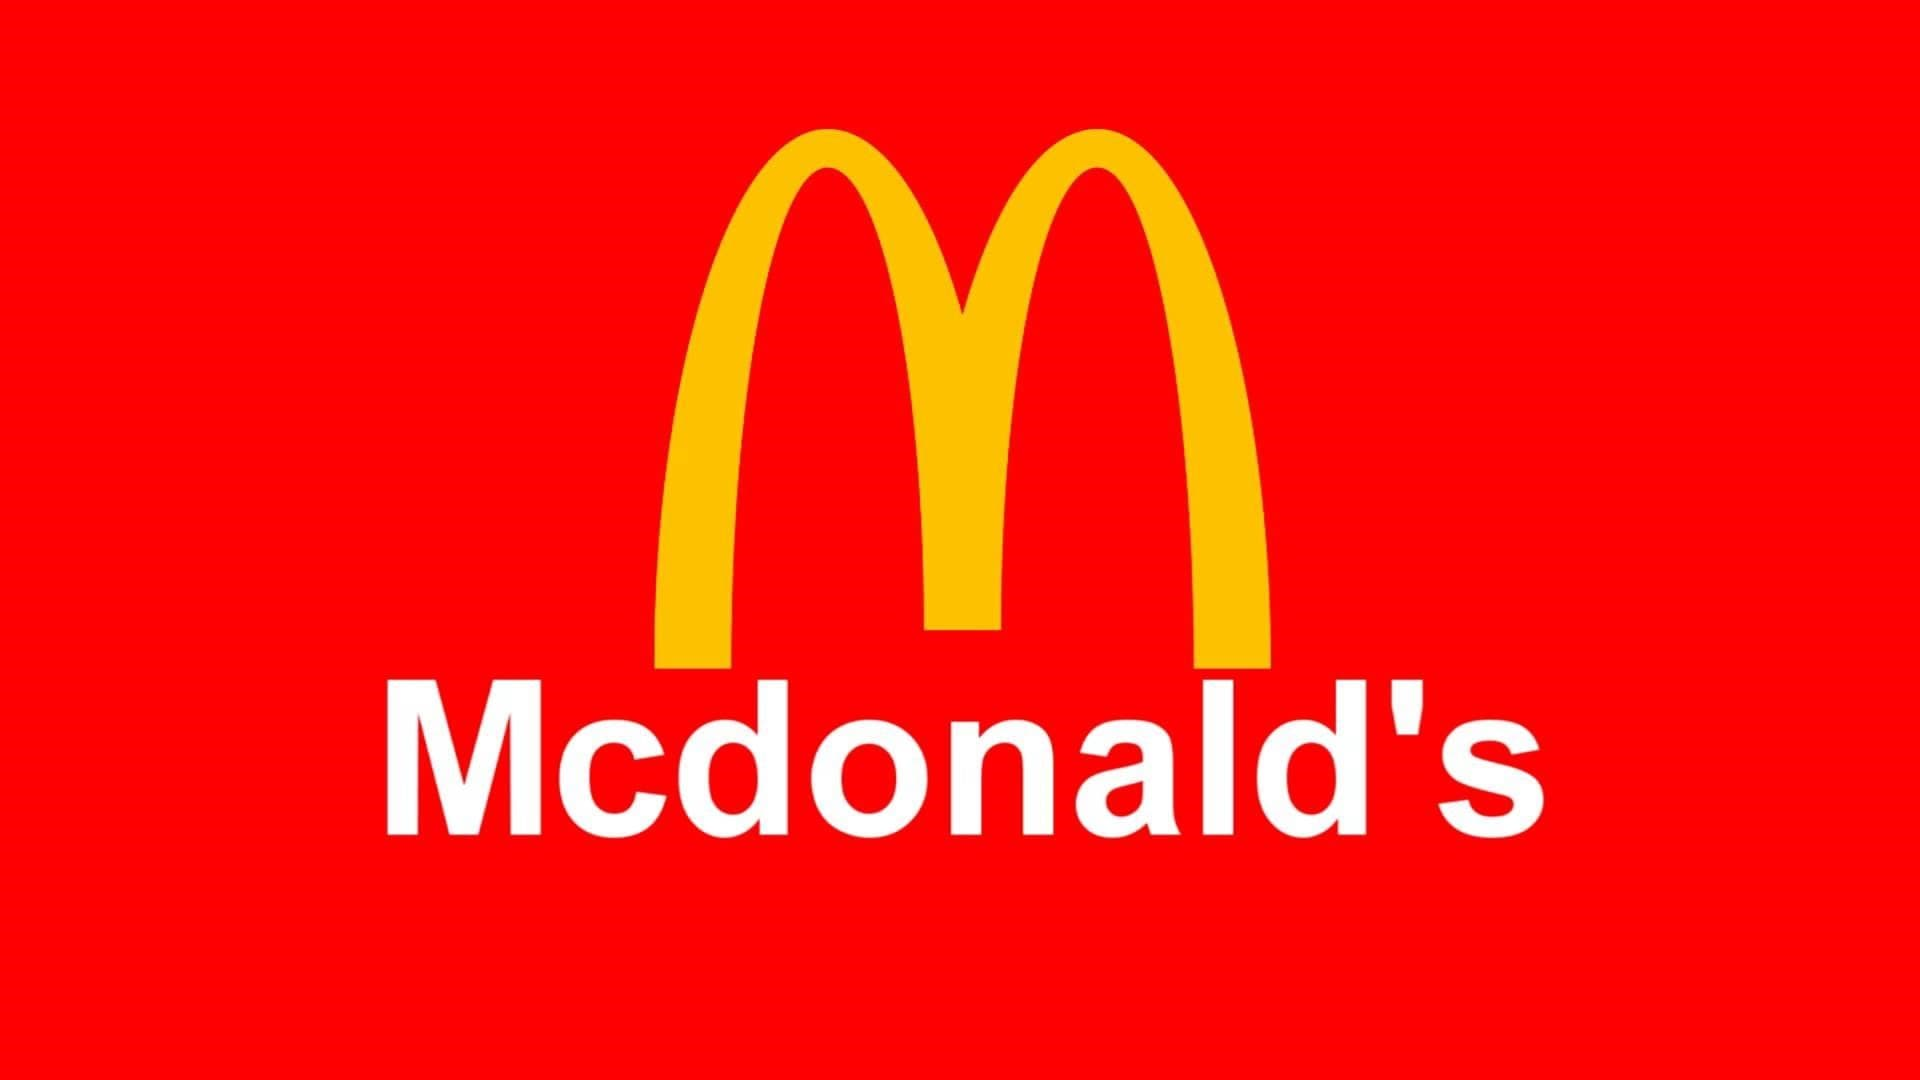 mcdonalds unethical business Great post mcdonald's has used ronald to cleverly market to kids and bypass parents to get kids hooked on a fast food diet with the epidemic of preventable diet-related disease it is time mcdonald's to take some responsibility for their marketing and retire ronald.